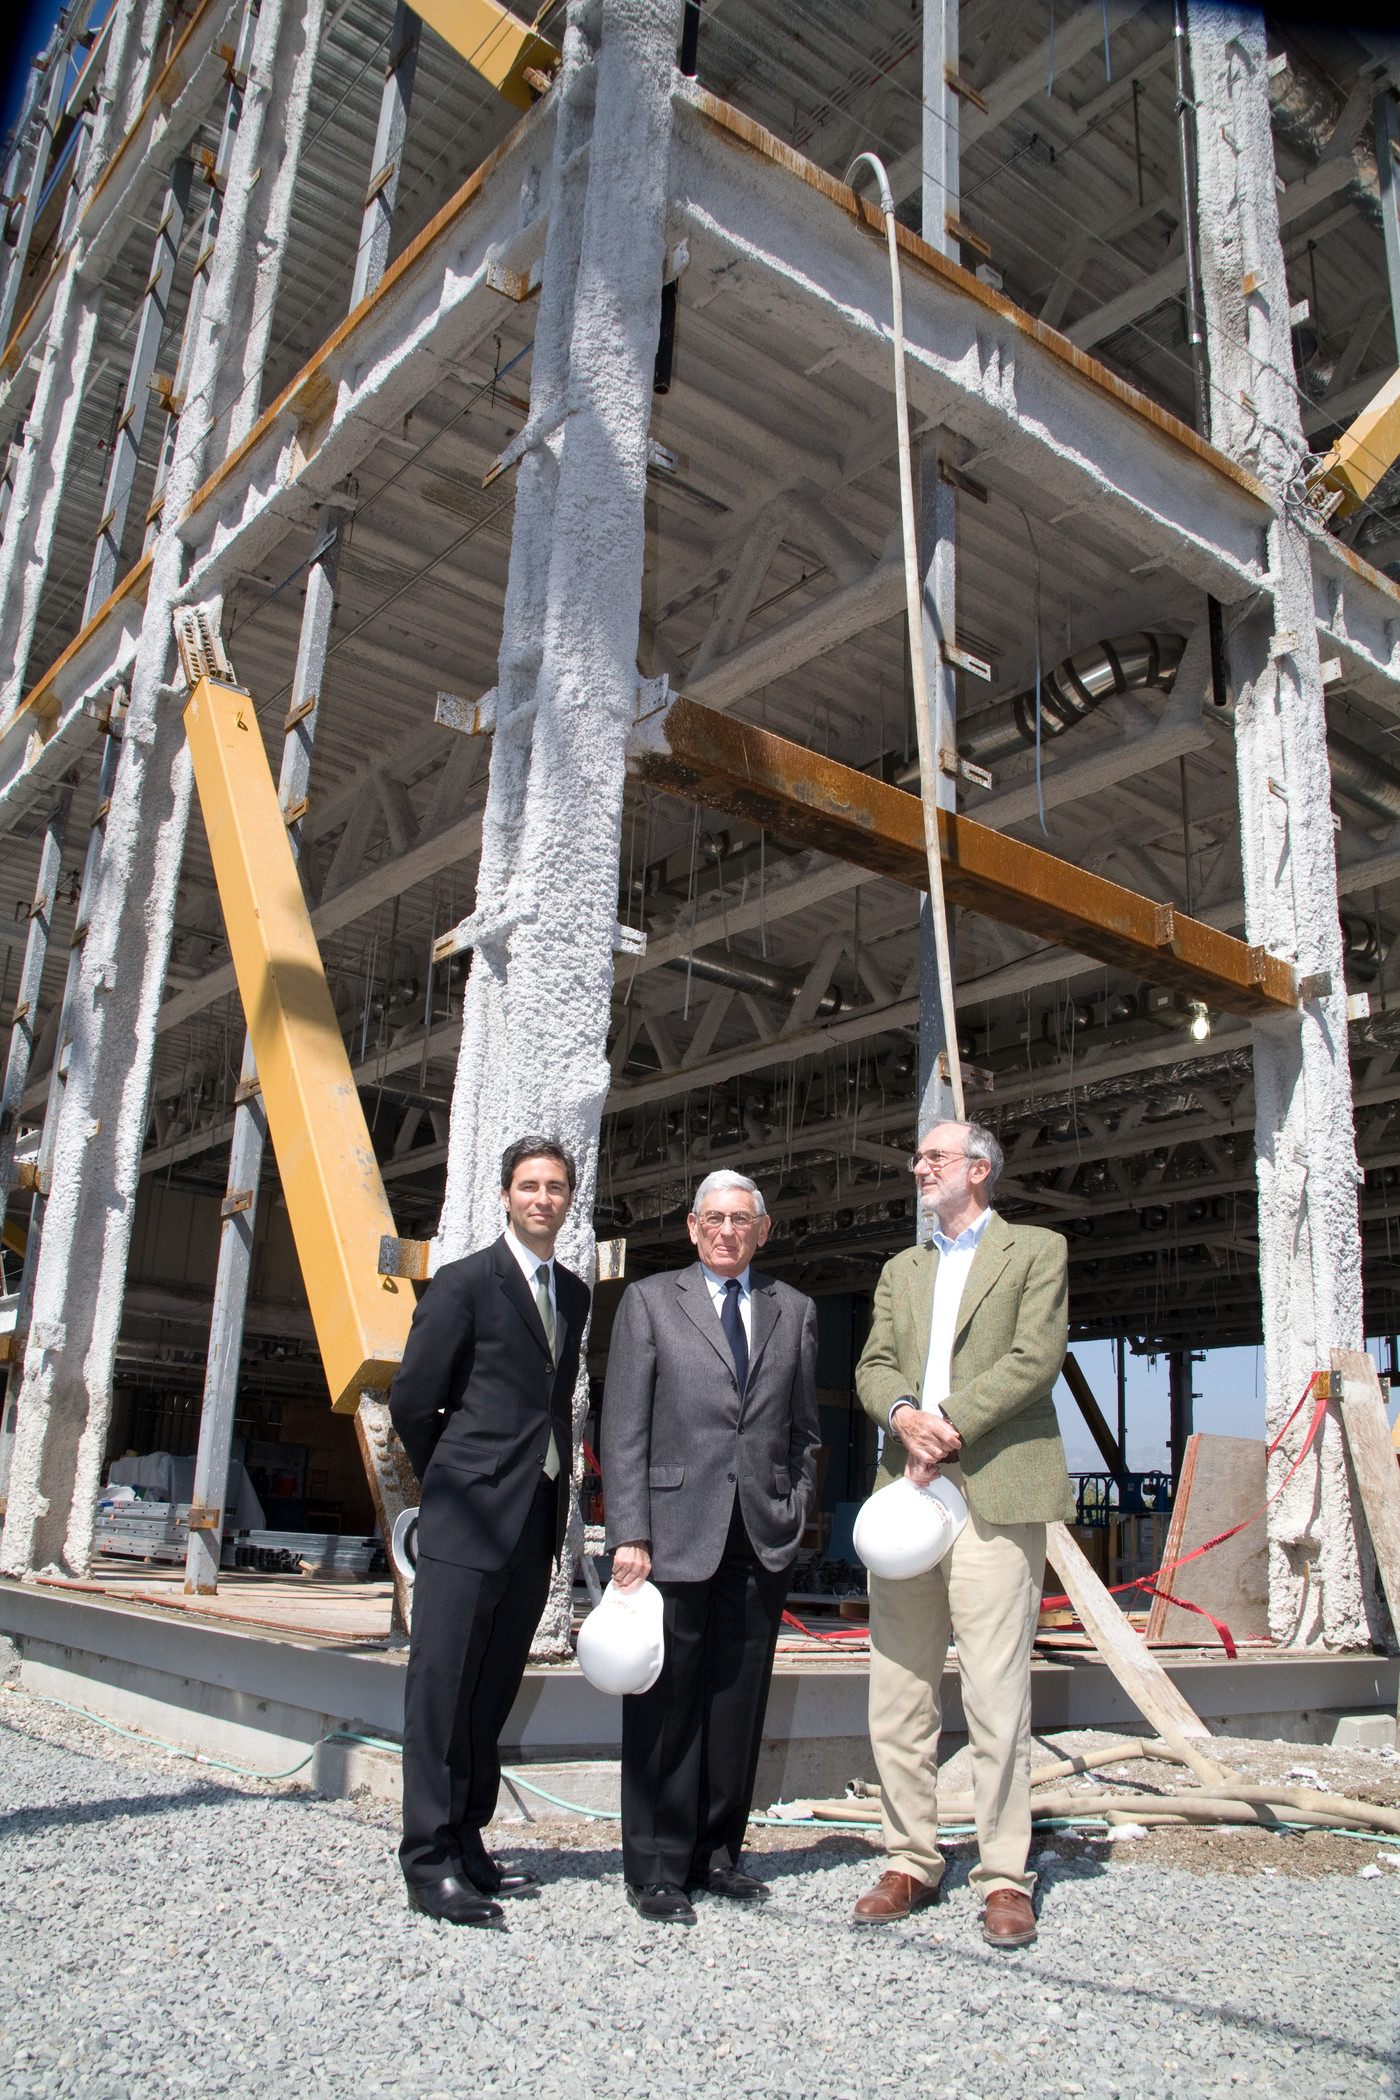 Michael Govan, Eli Broad, and Renzo Piano, construction of Broad Contemporary Art Museum (BCAM), LACMA, 2007